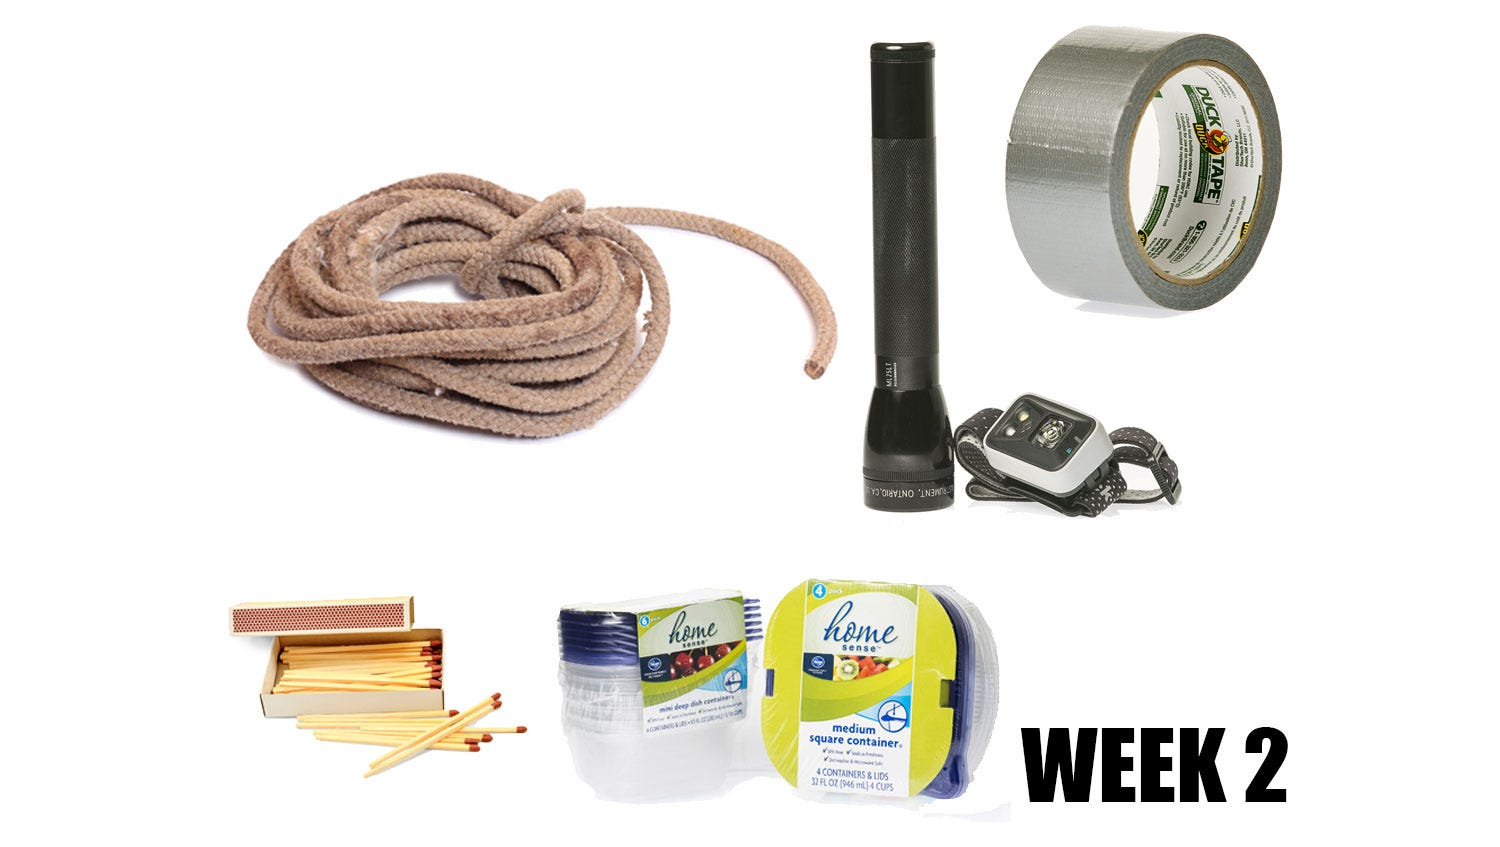 Week 2: Ropes, tape, flashlights and a pet leash